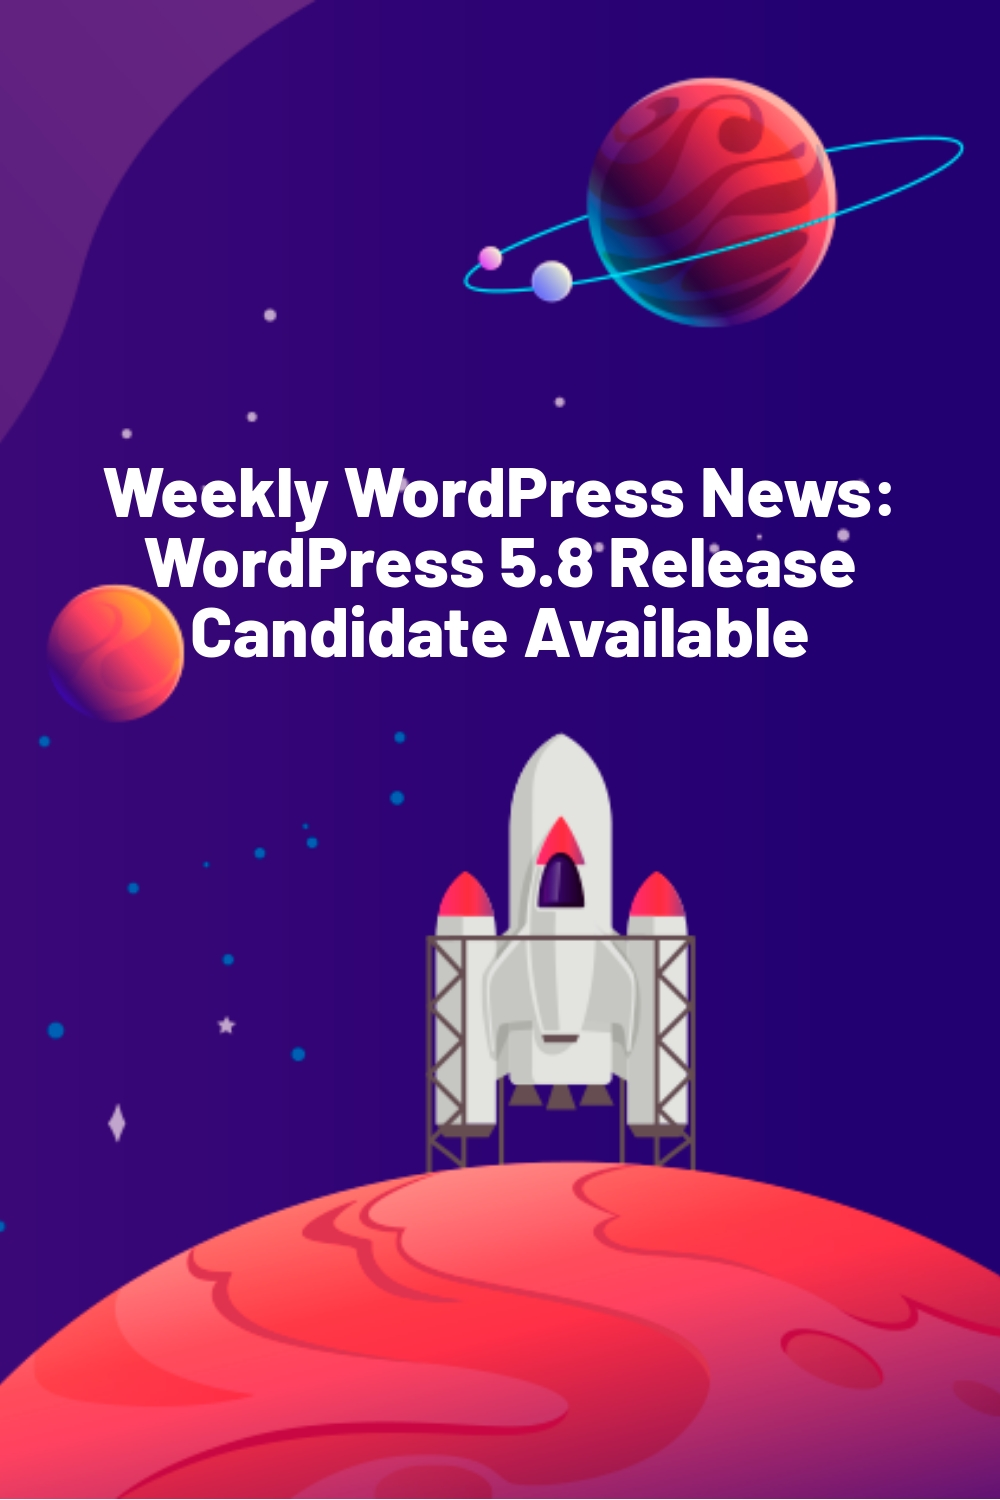 Weekly WordPress News: WordPress 5.8 Release Candidate Available